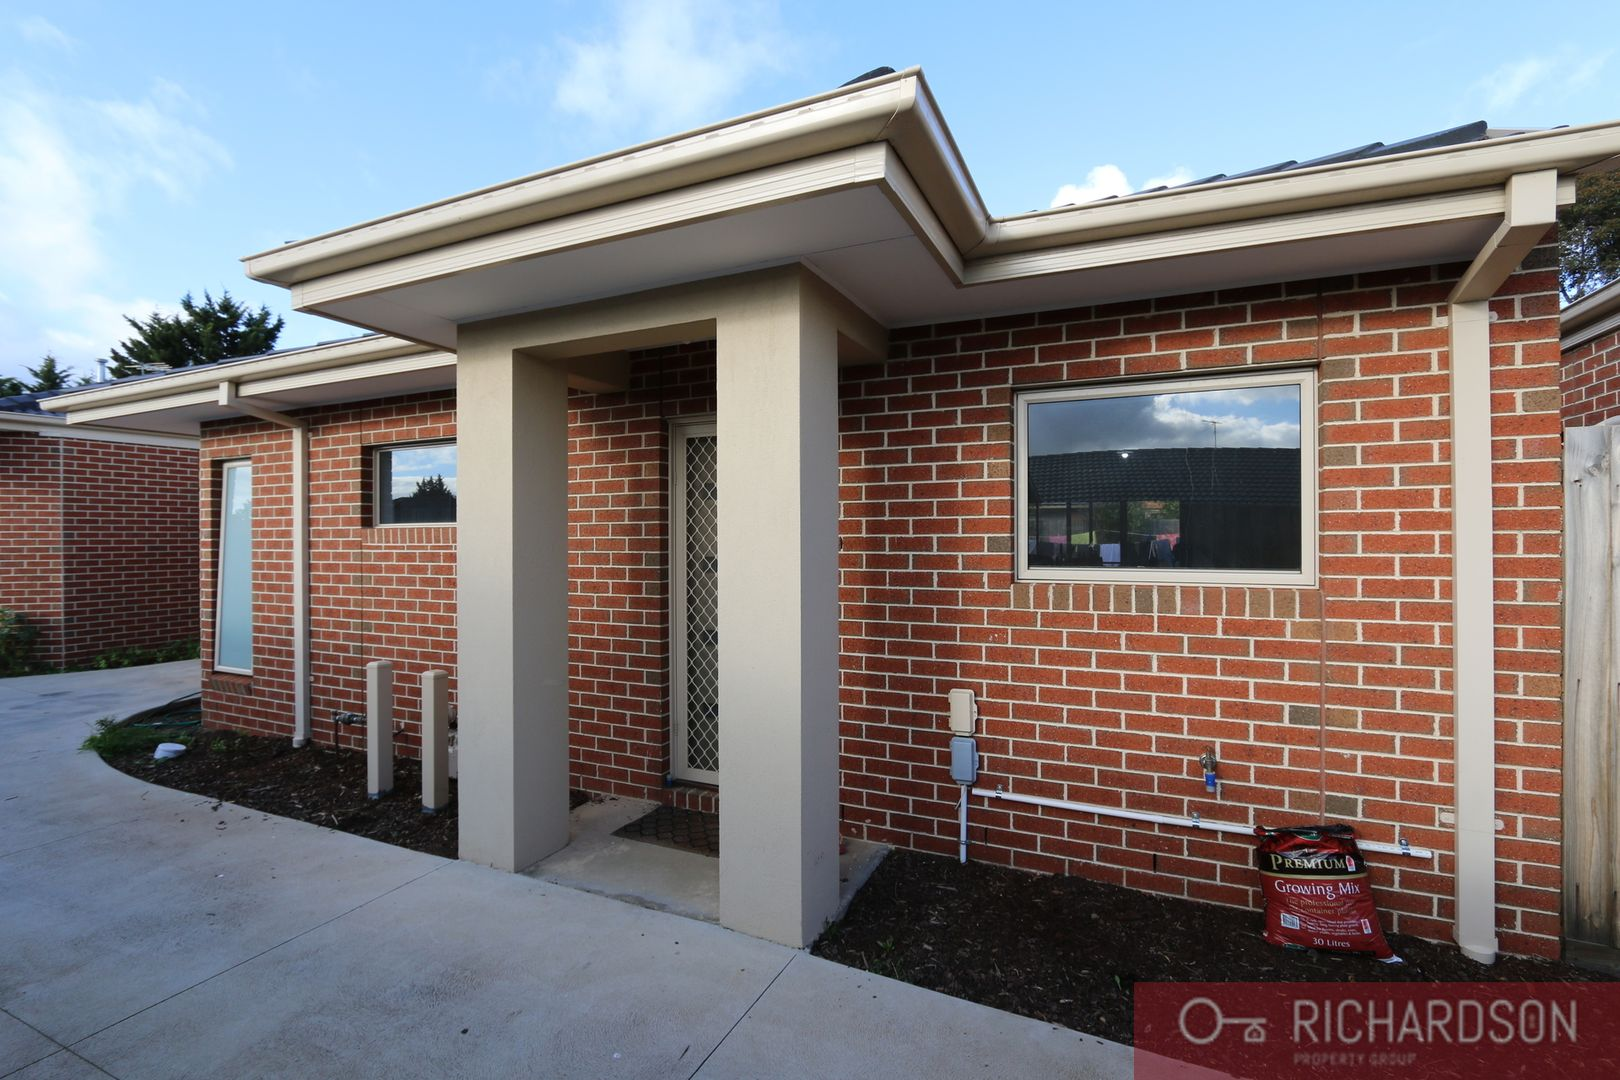 2 bedrooms Apartment / Unit / Flat in 2/35 McKenzie Crescent HOPPERS CROSSING VIC, 3029